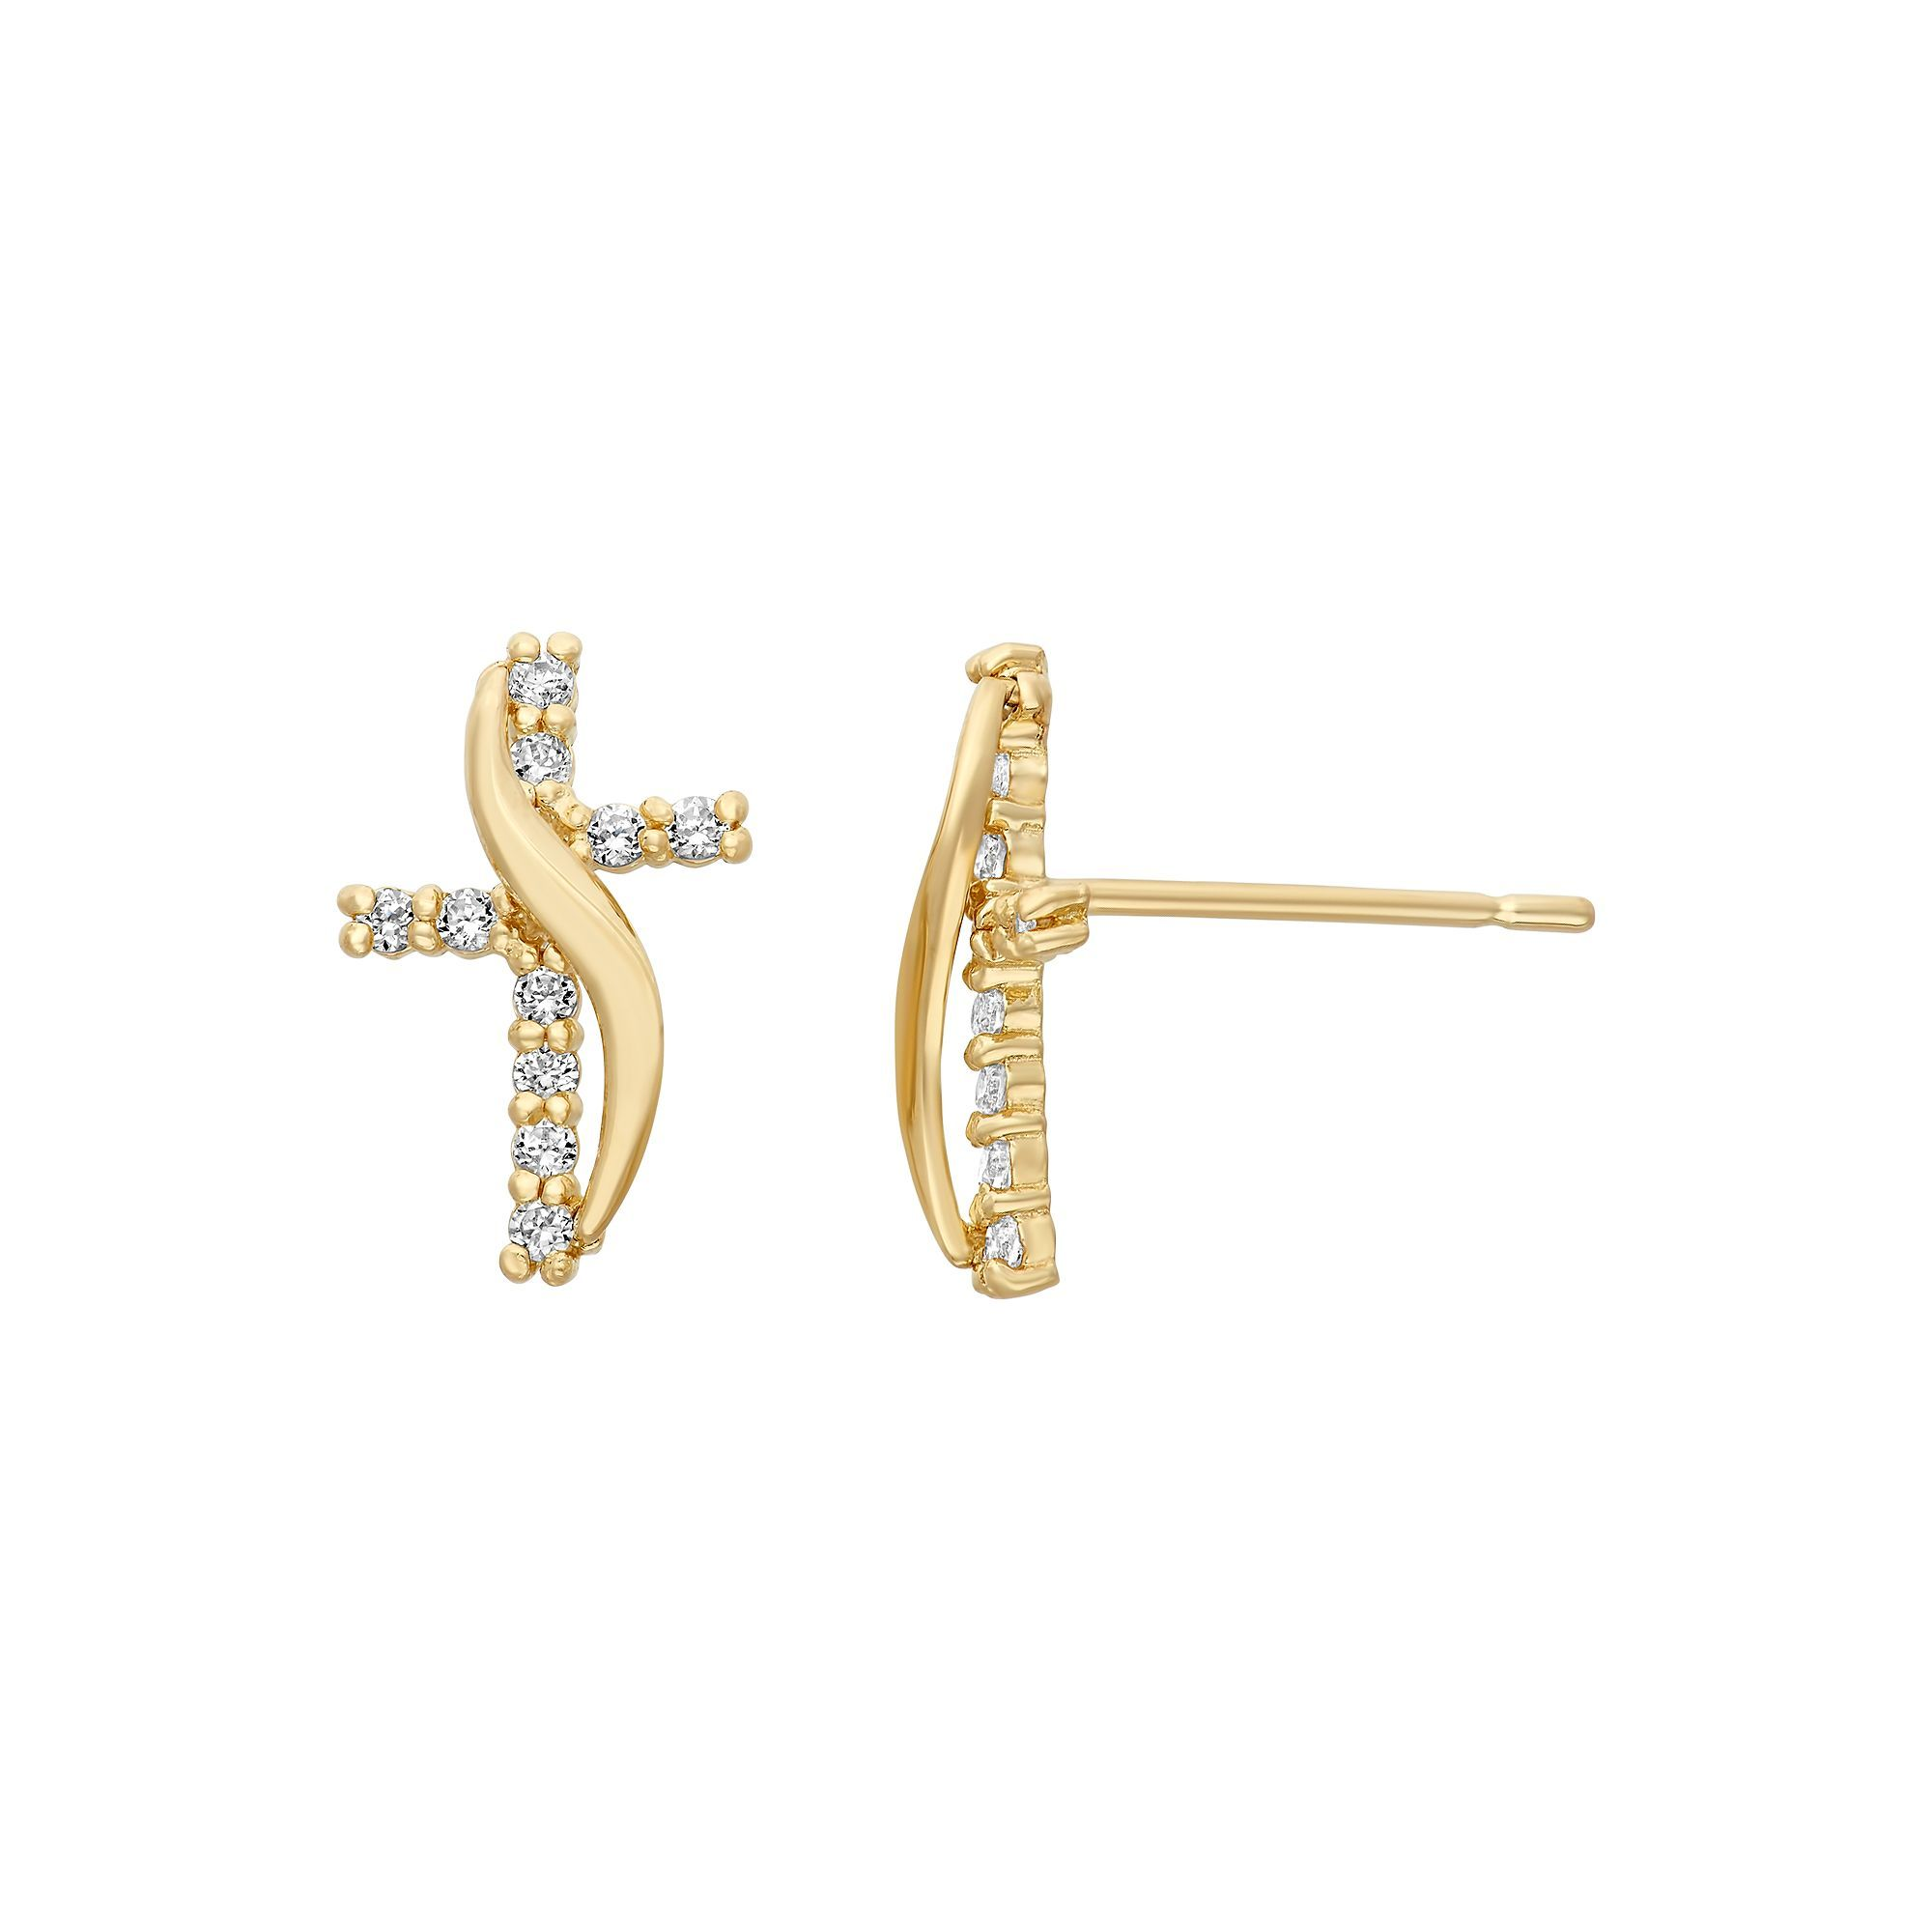 3b0f9b1d3 Junior Jewels Cubic Zirconia 14k Gold Cross Stud Earrings - Kids, Girl's,  White